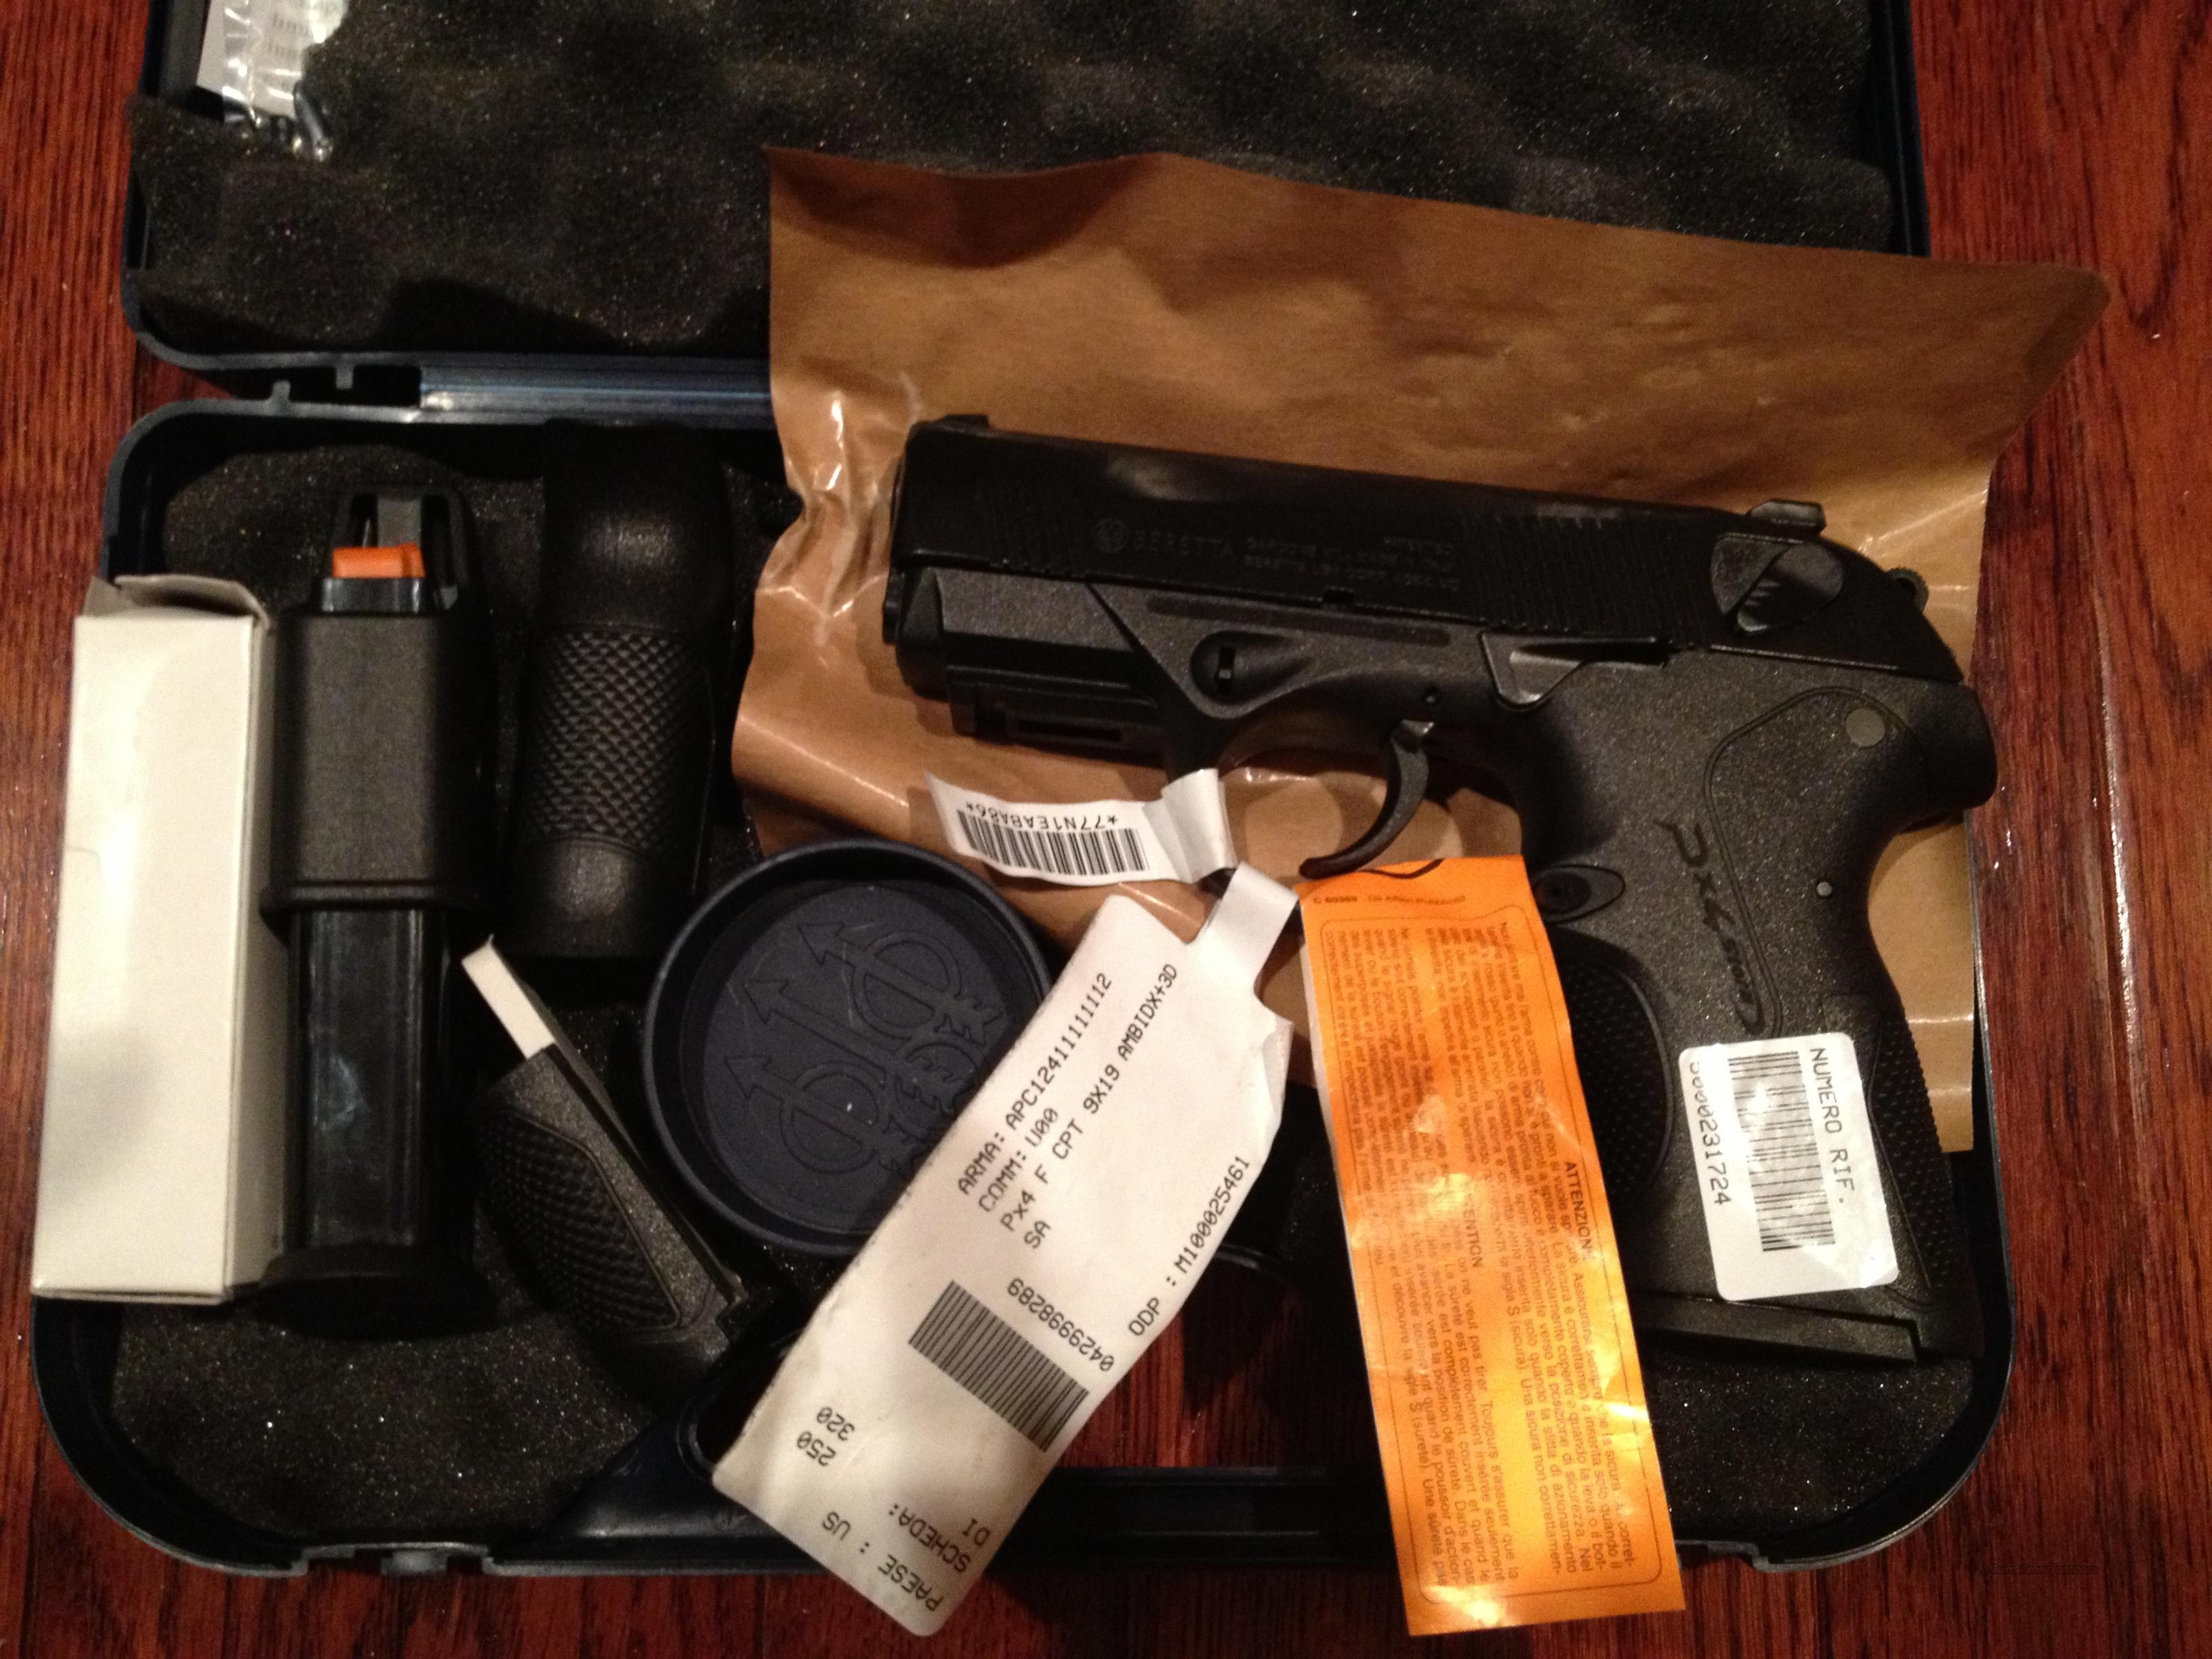 PRESIDENT'S DAY SPECIAL Beretta PX4 Storm Compact  NIB w/ 2 High CapacityMags, Case, Extra Grip Inserts  Guns > Pistols > Beretta Pistols > Polymer Frame